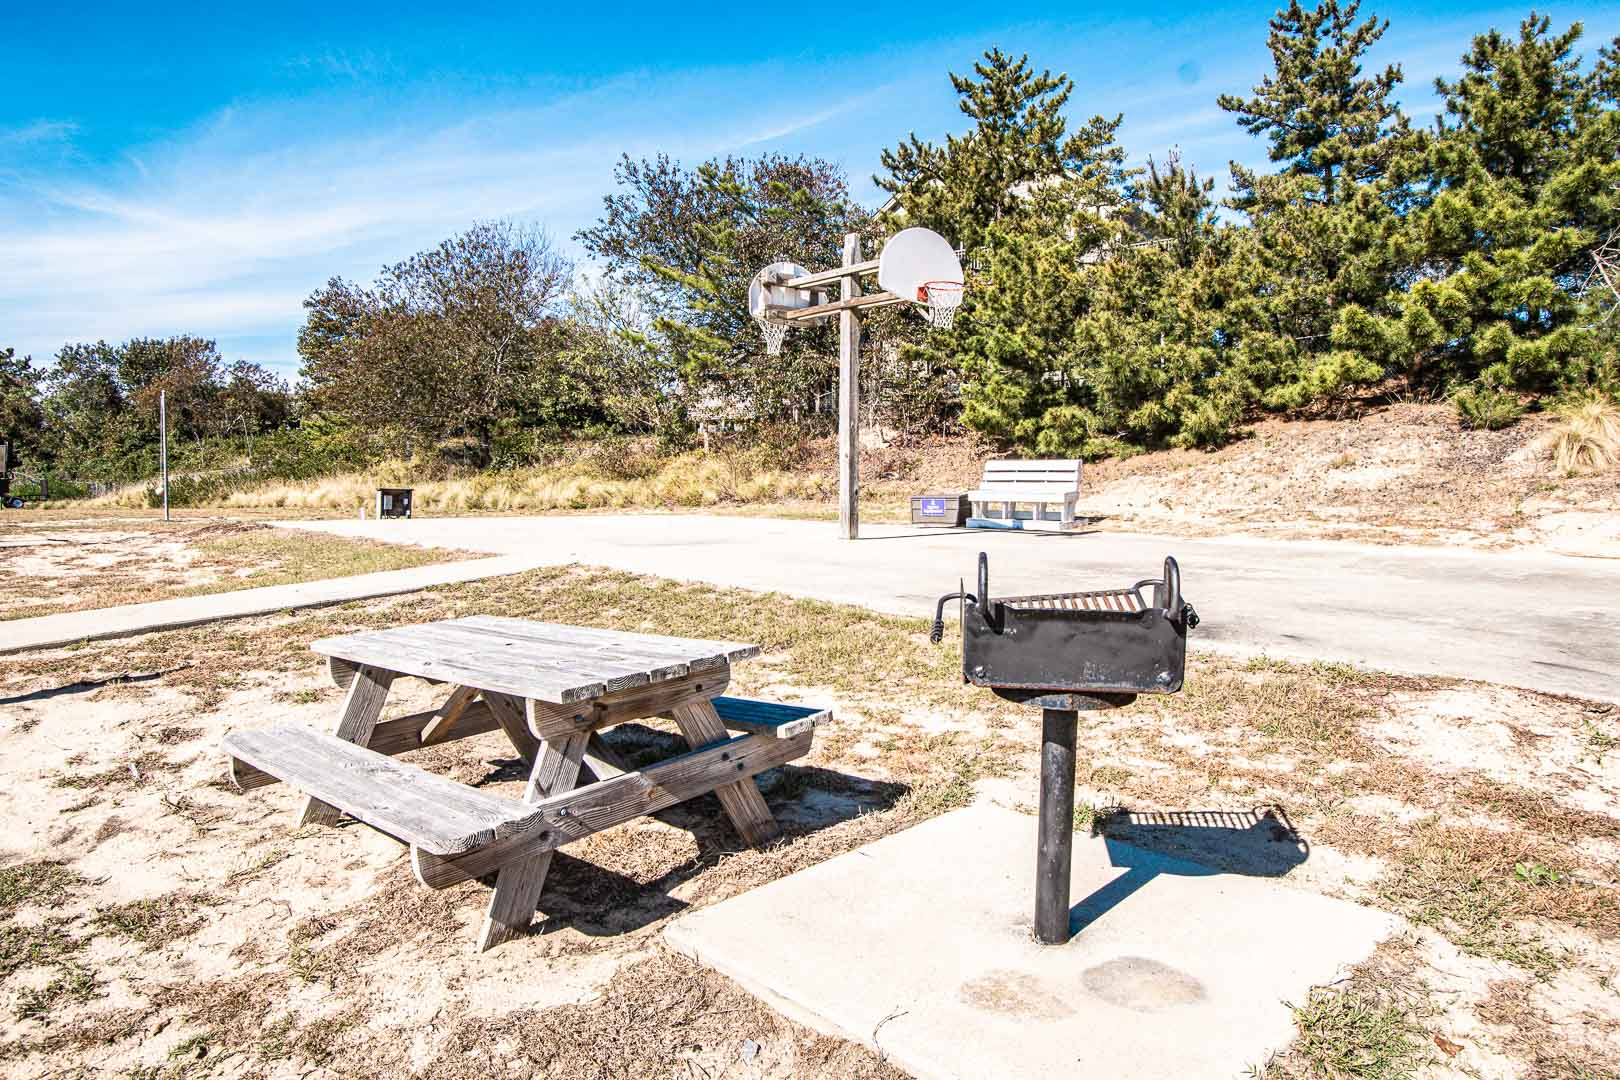 A tranquil BBQ area at VRI's Barrier Island Station in North Carolina.